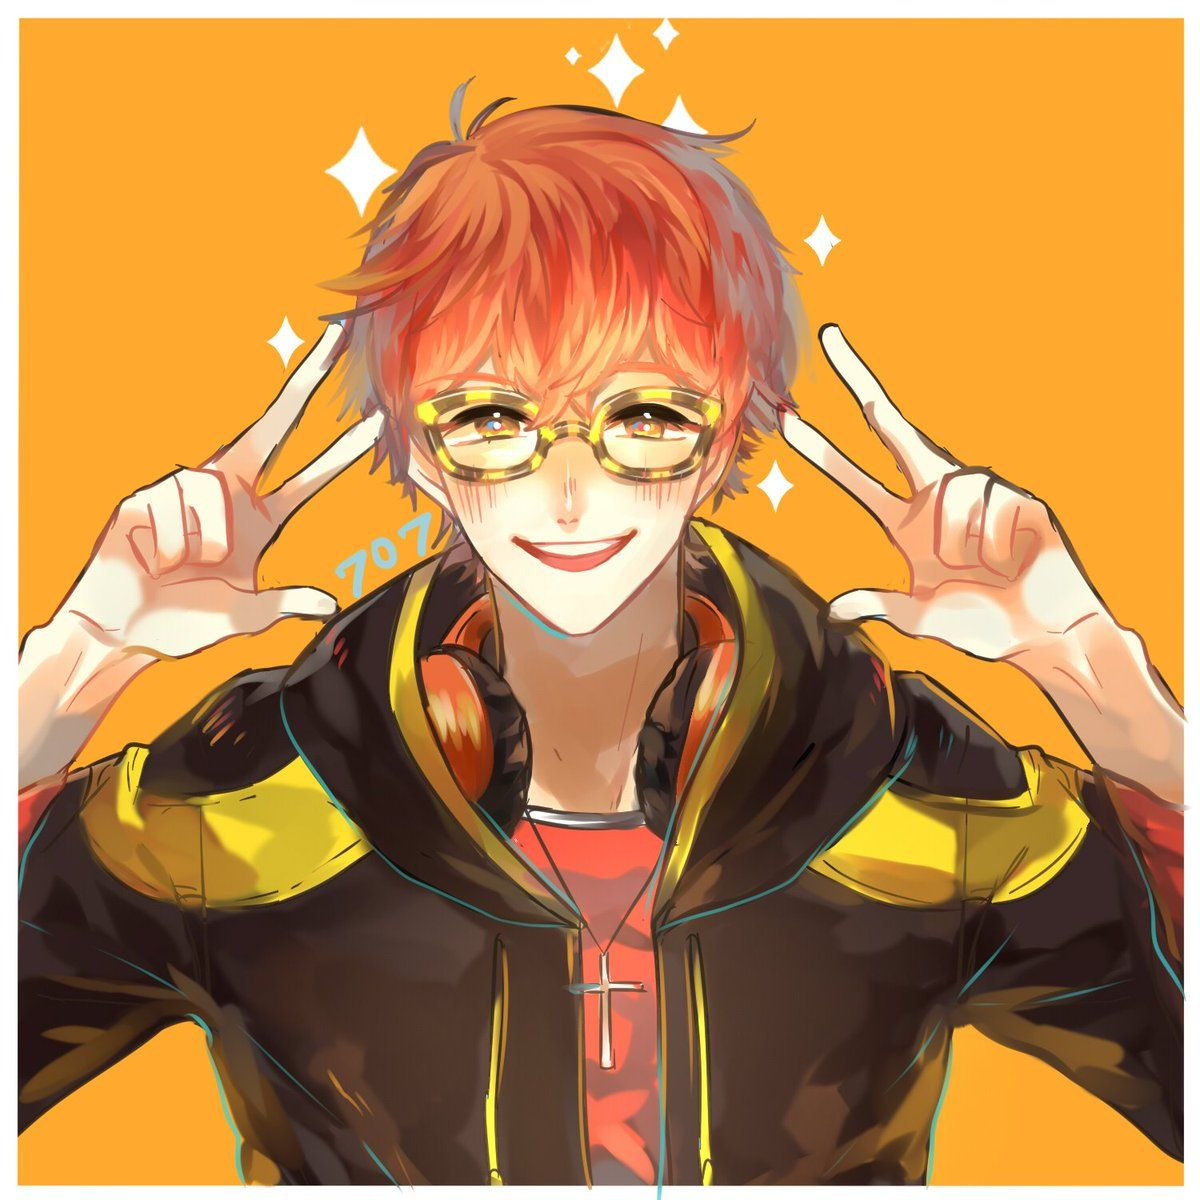 ✨🌻rie @ COMMISSION 🌻✨ (@Rieeen17)